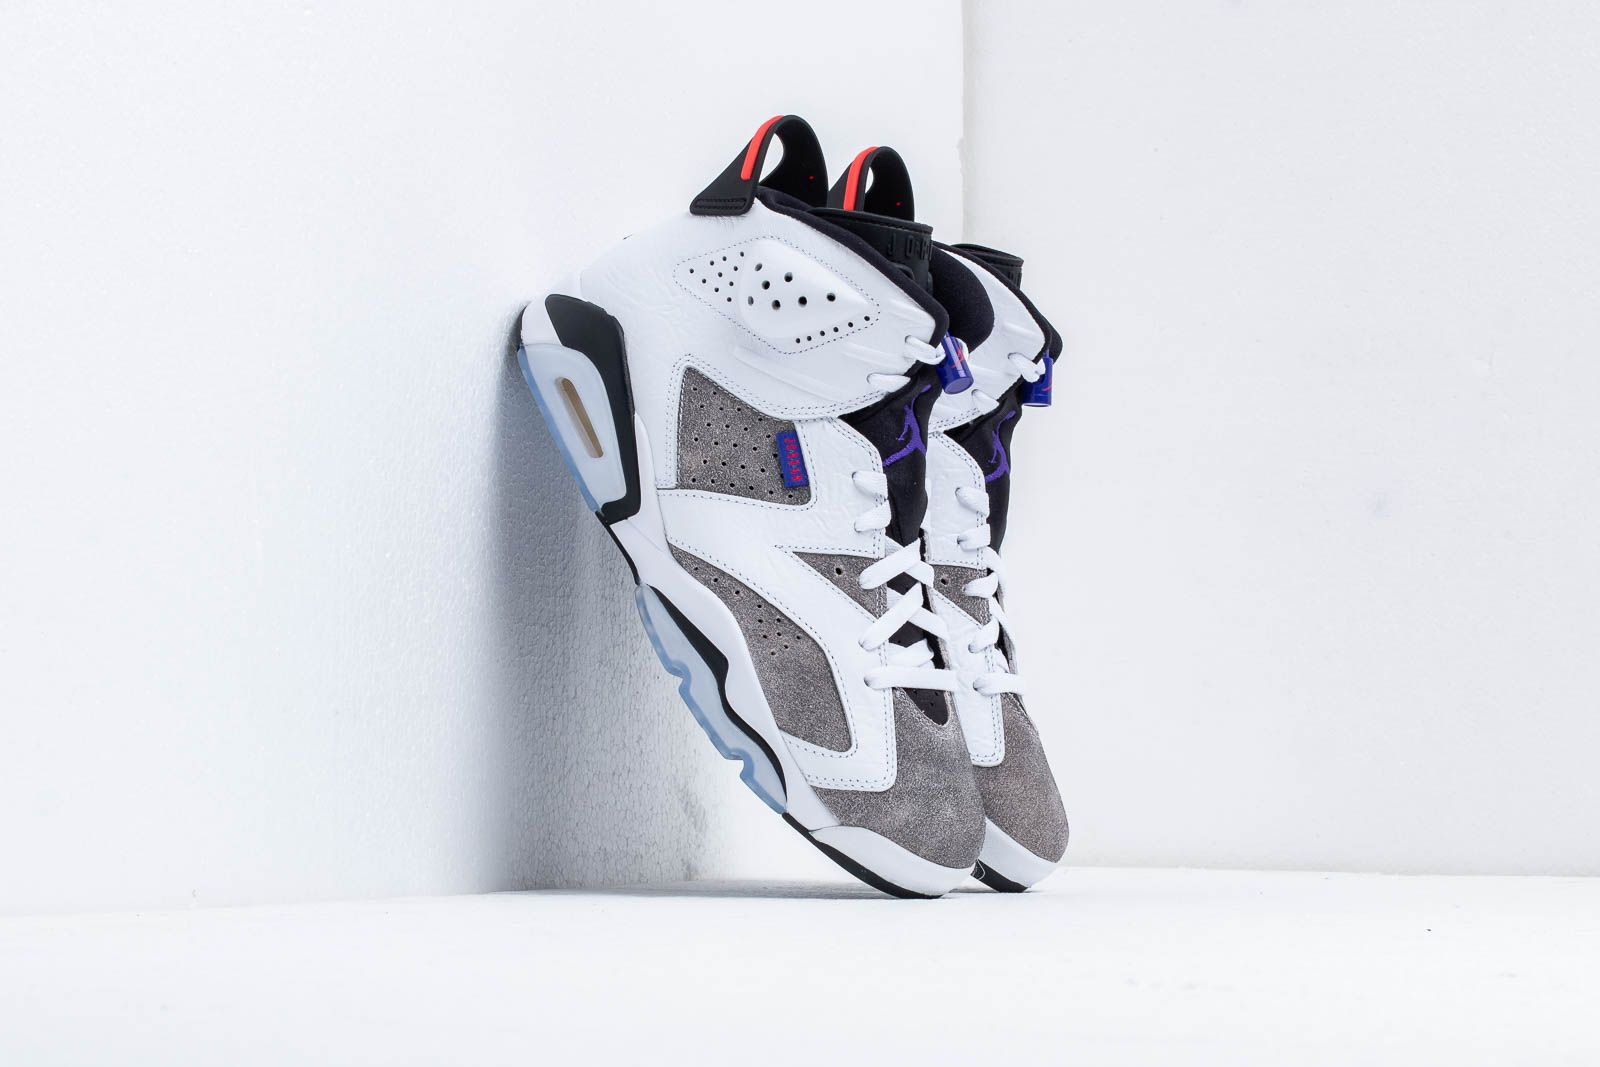 9d3dc31de06 Air Jordan 6 Retro Ltr White/ Dark Concord-Black-Infrared 23 | Footshop